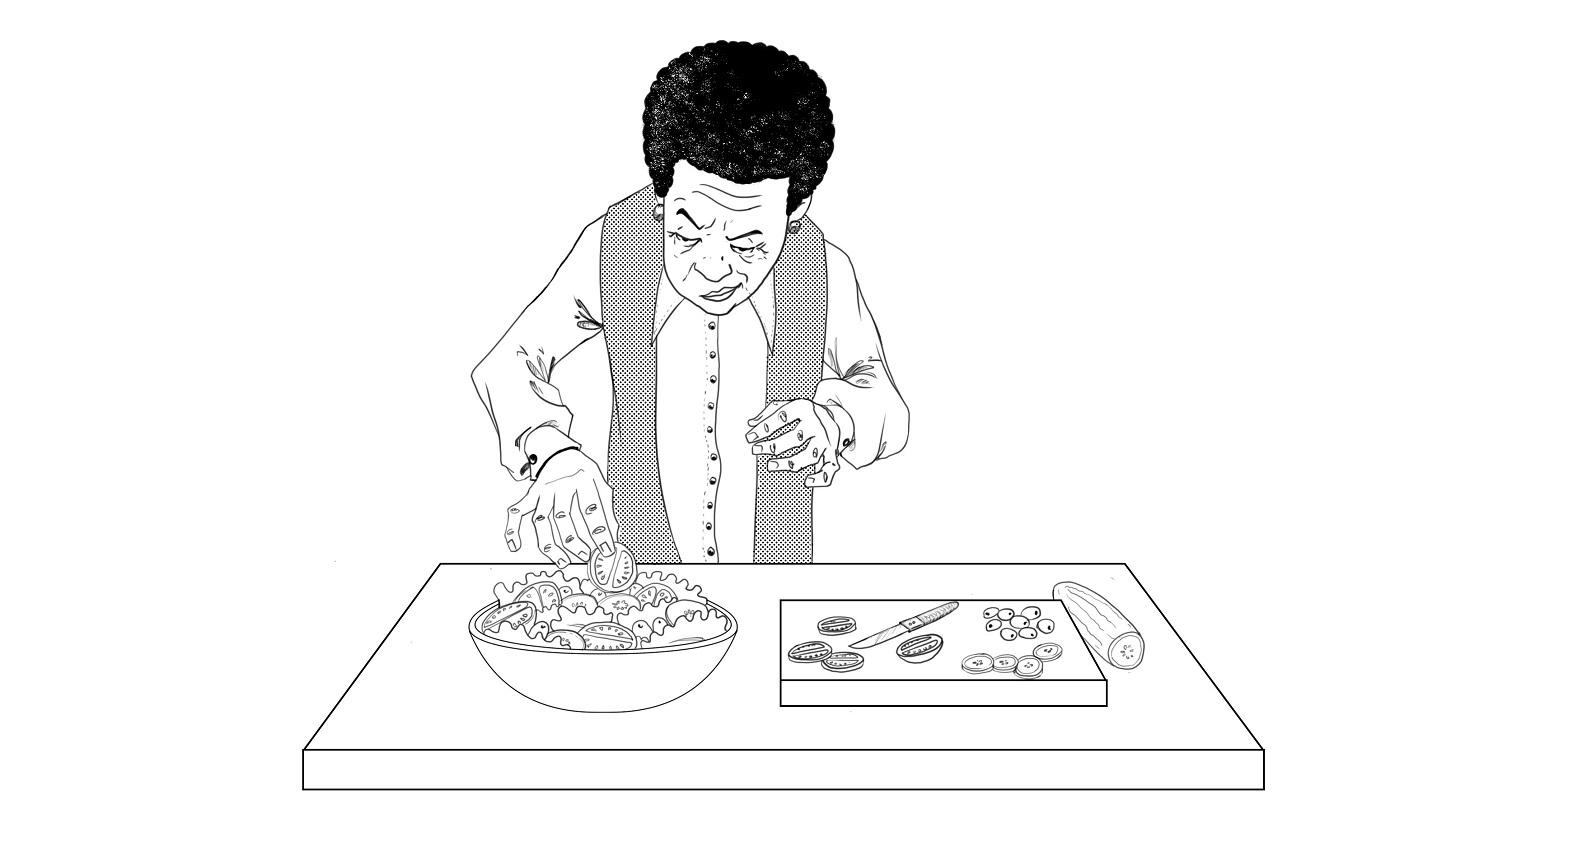 Mom cooking illustration by Michael Powell